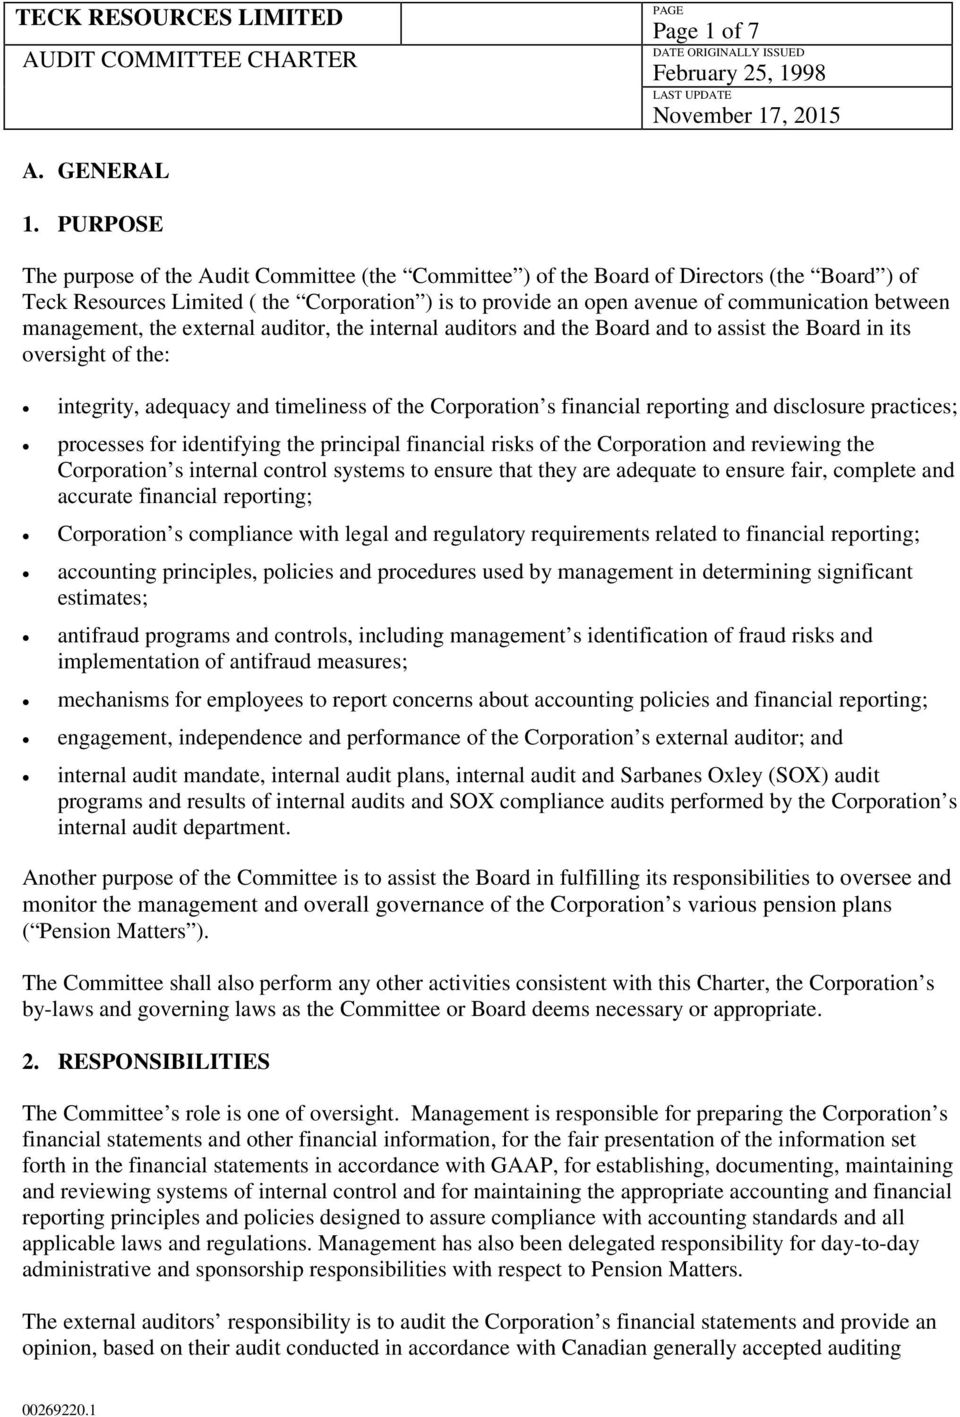 TECK RESOURCES LIMITED AUDIT COMMITTEE CHARTER - PDF